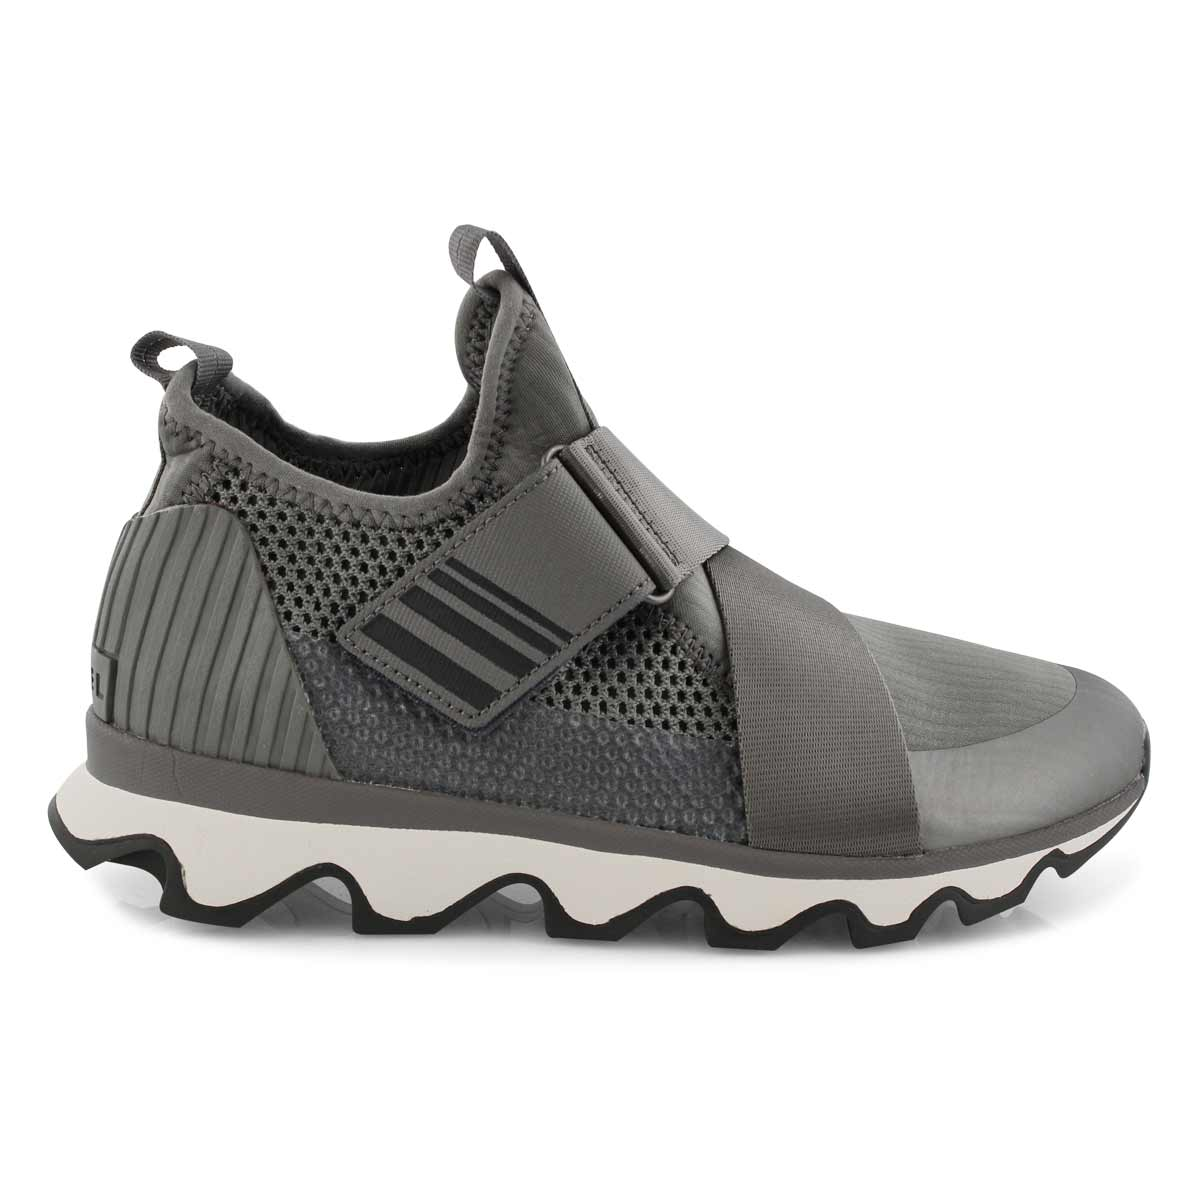 Lds Kinetic Sneak quarry fashion sneaker